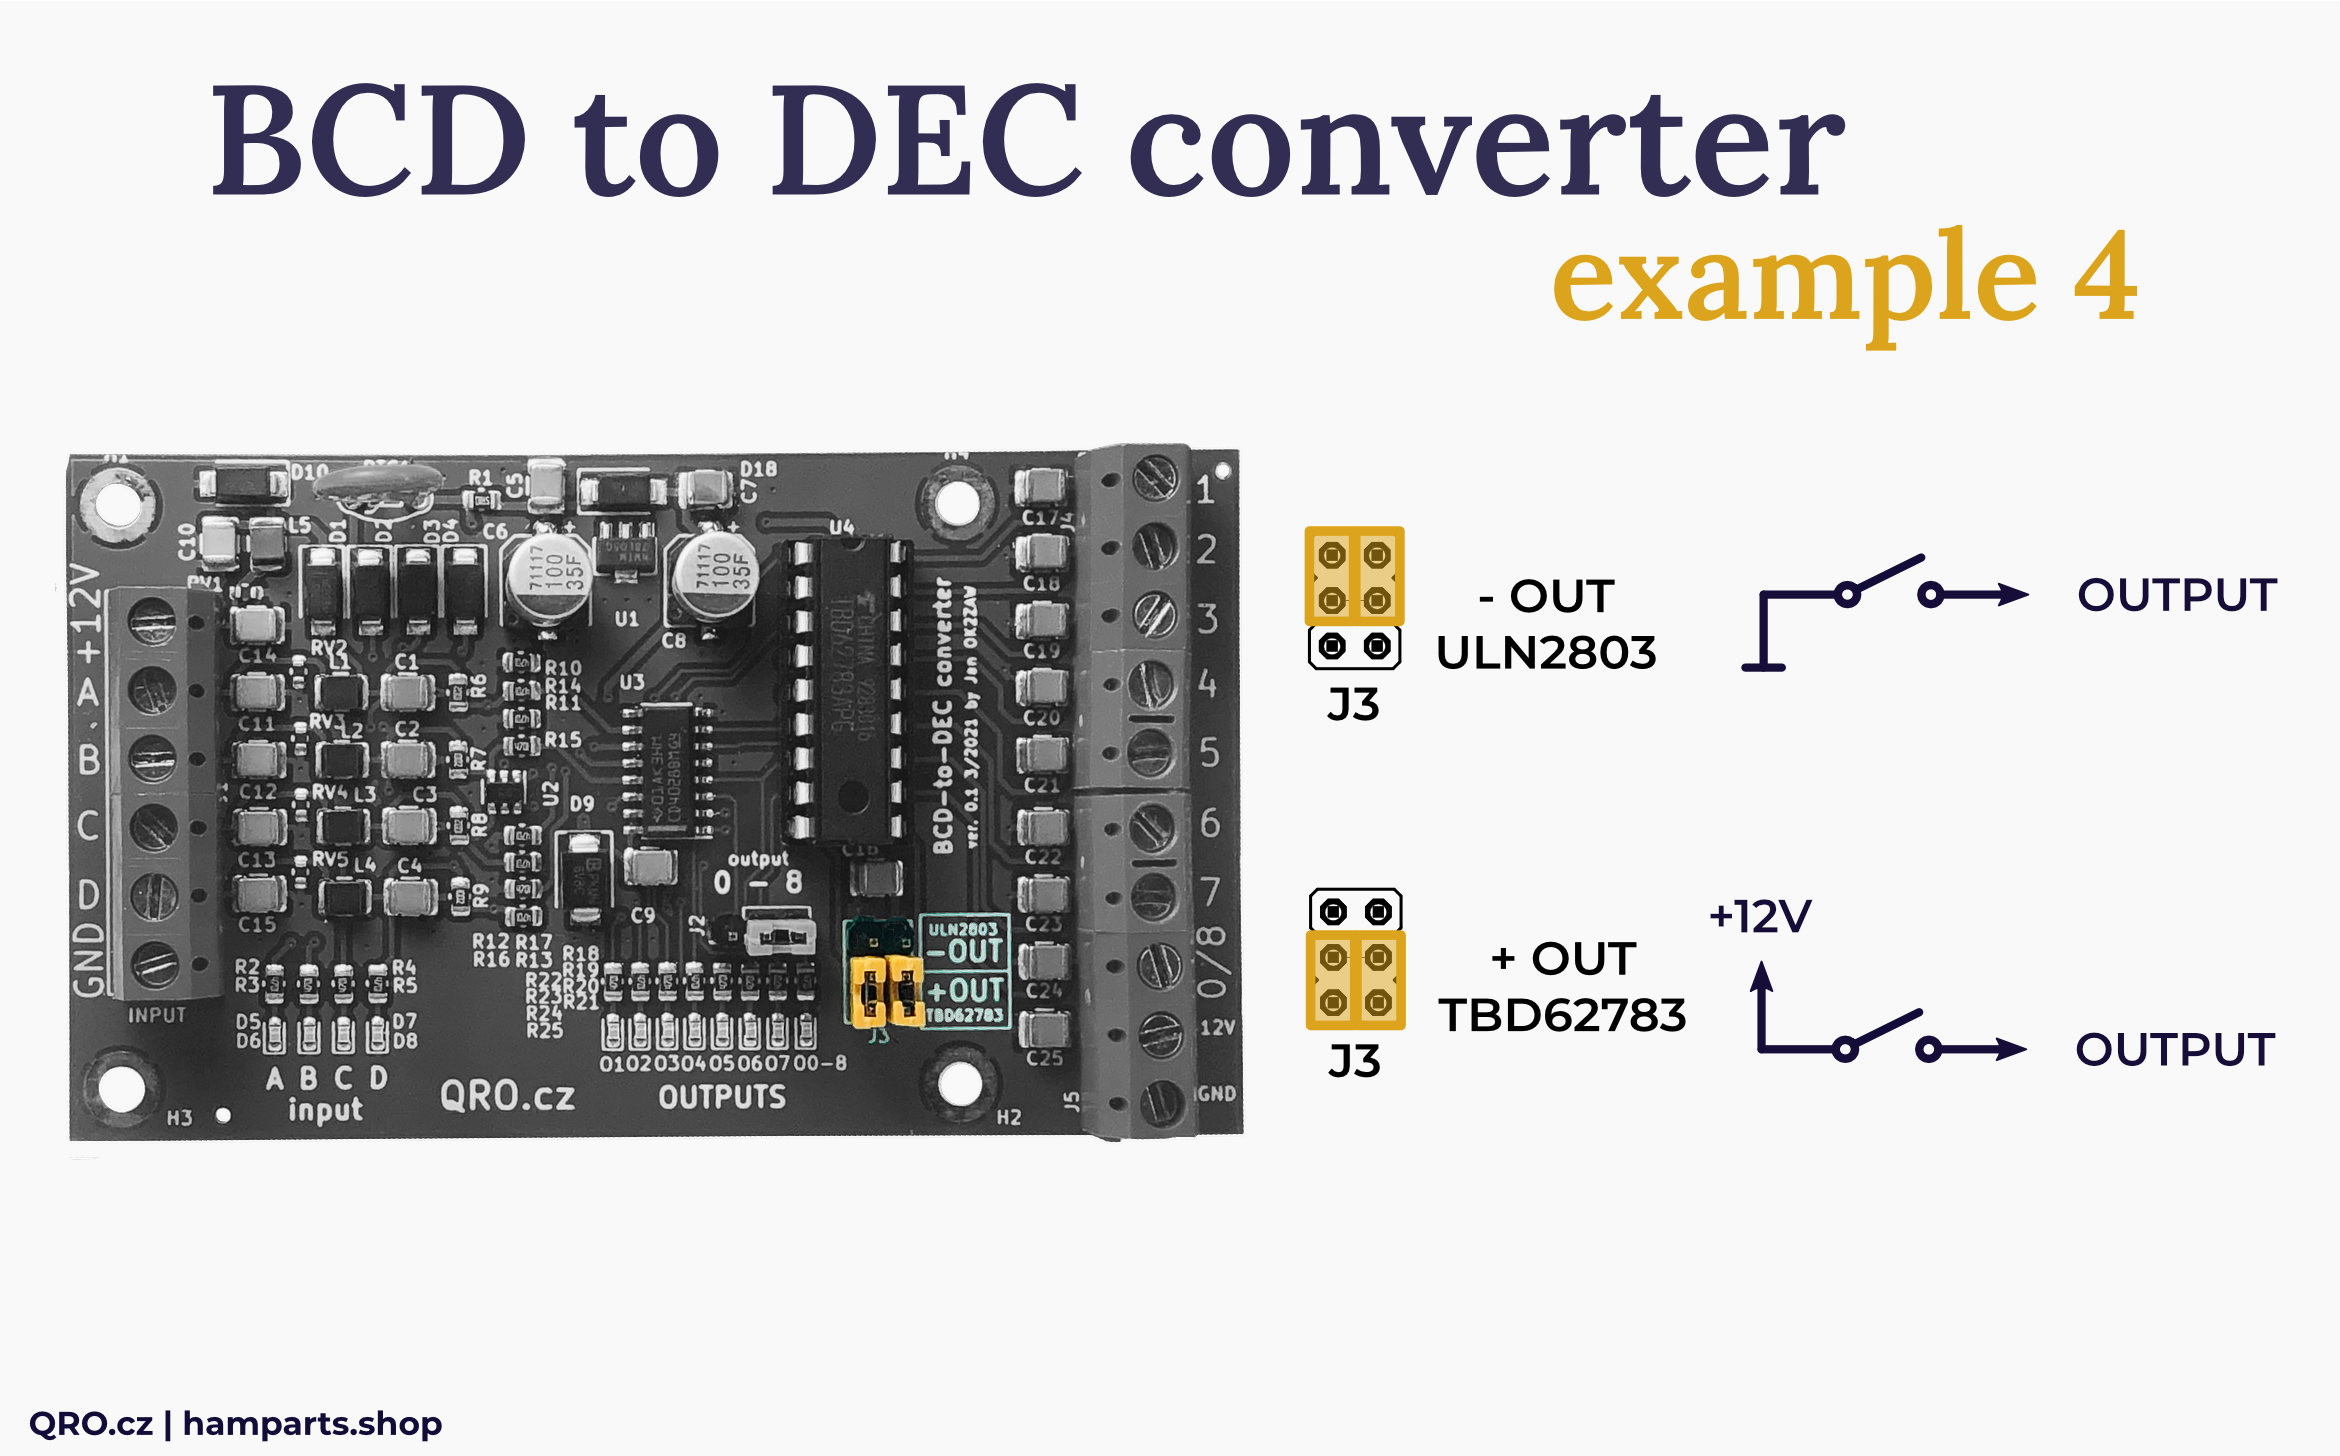 BCD to DEC converter switch example by qro.cz hamparts.shop